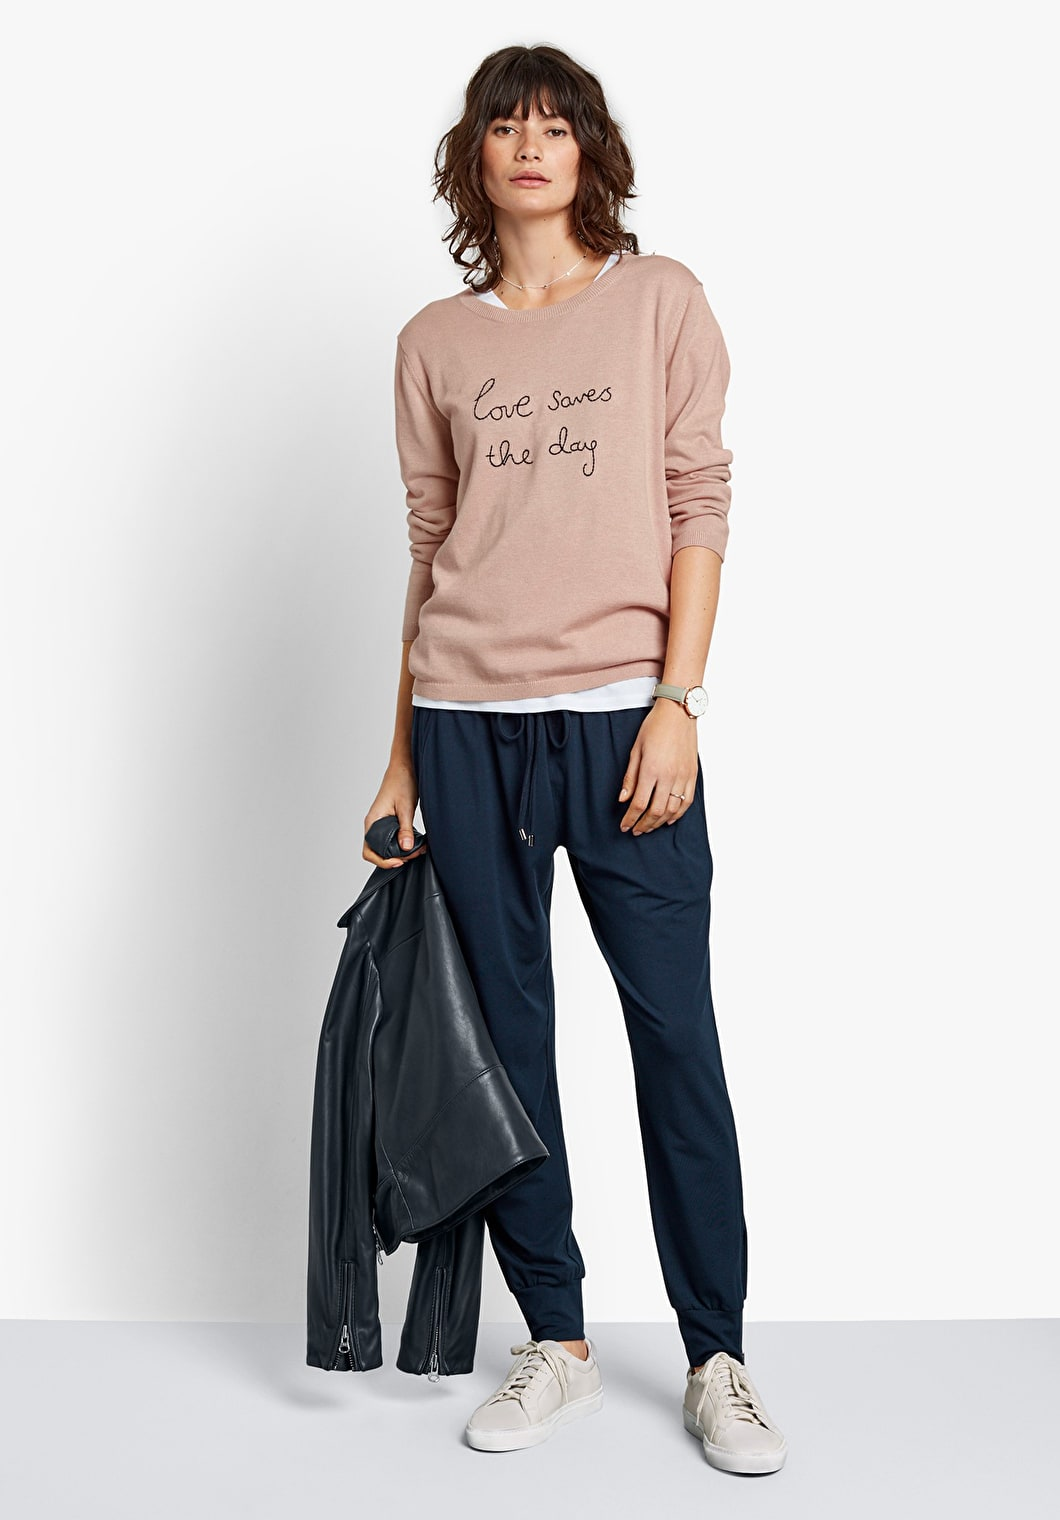 Love Saves The Day Jumper | hush